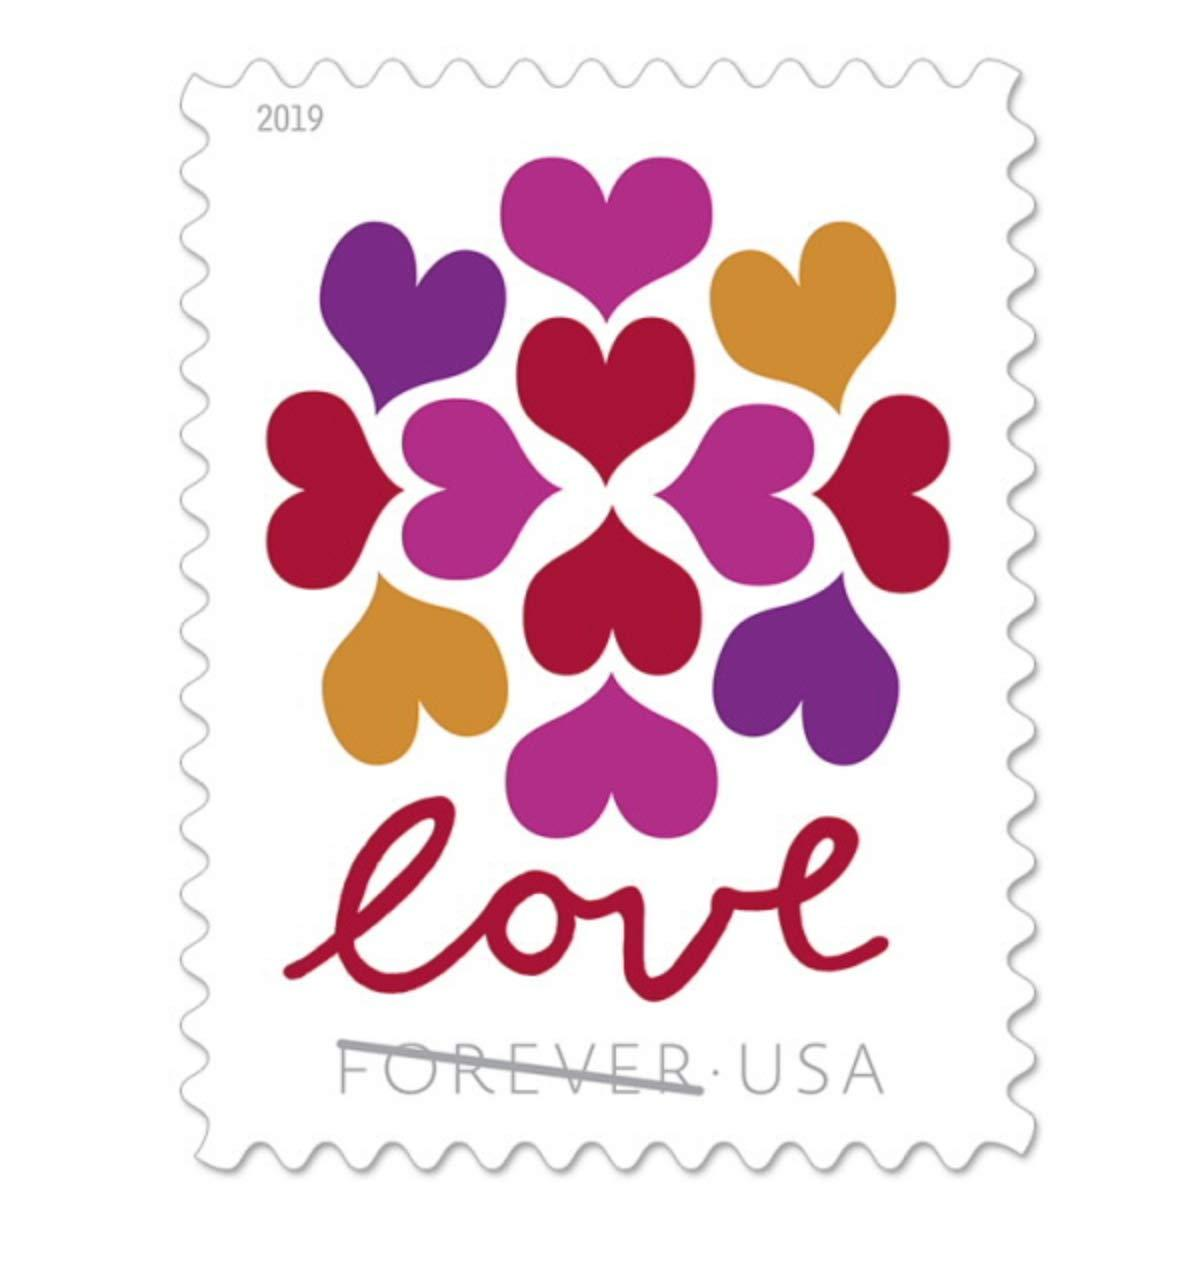 USPS Hearts Blossom Forever Stamps 2019 (1 Sheet of 20 Stamps)